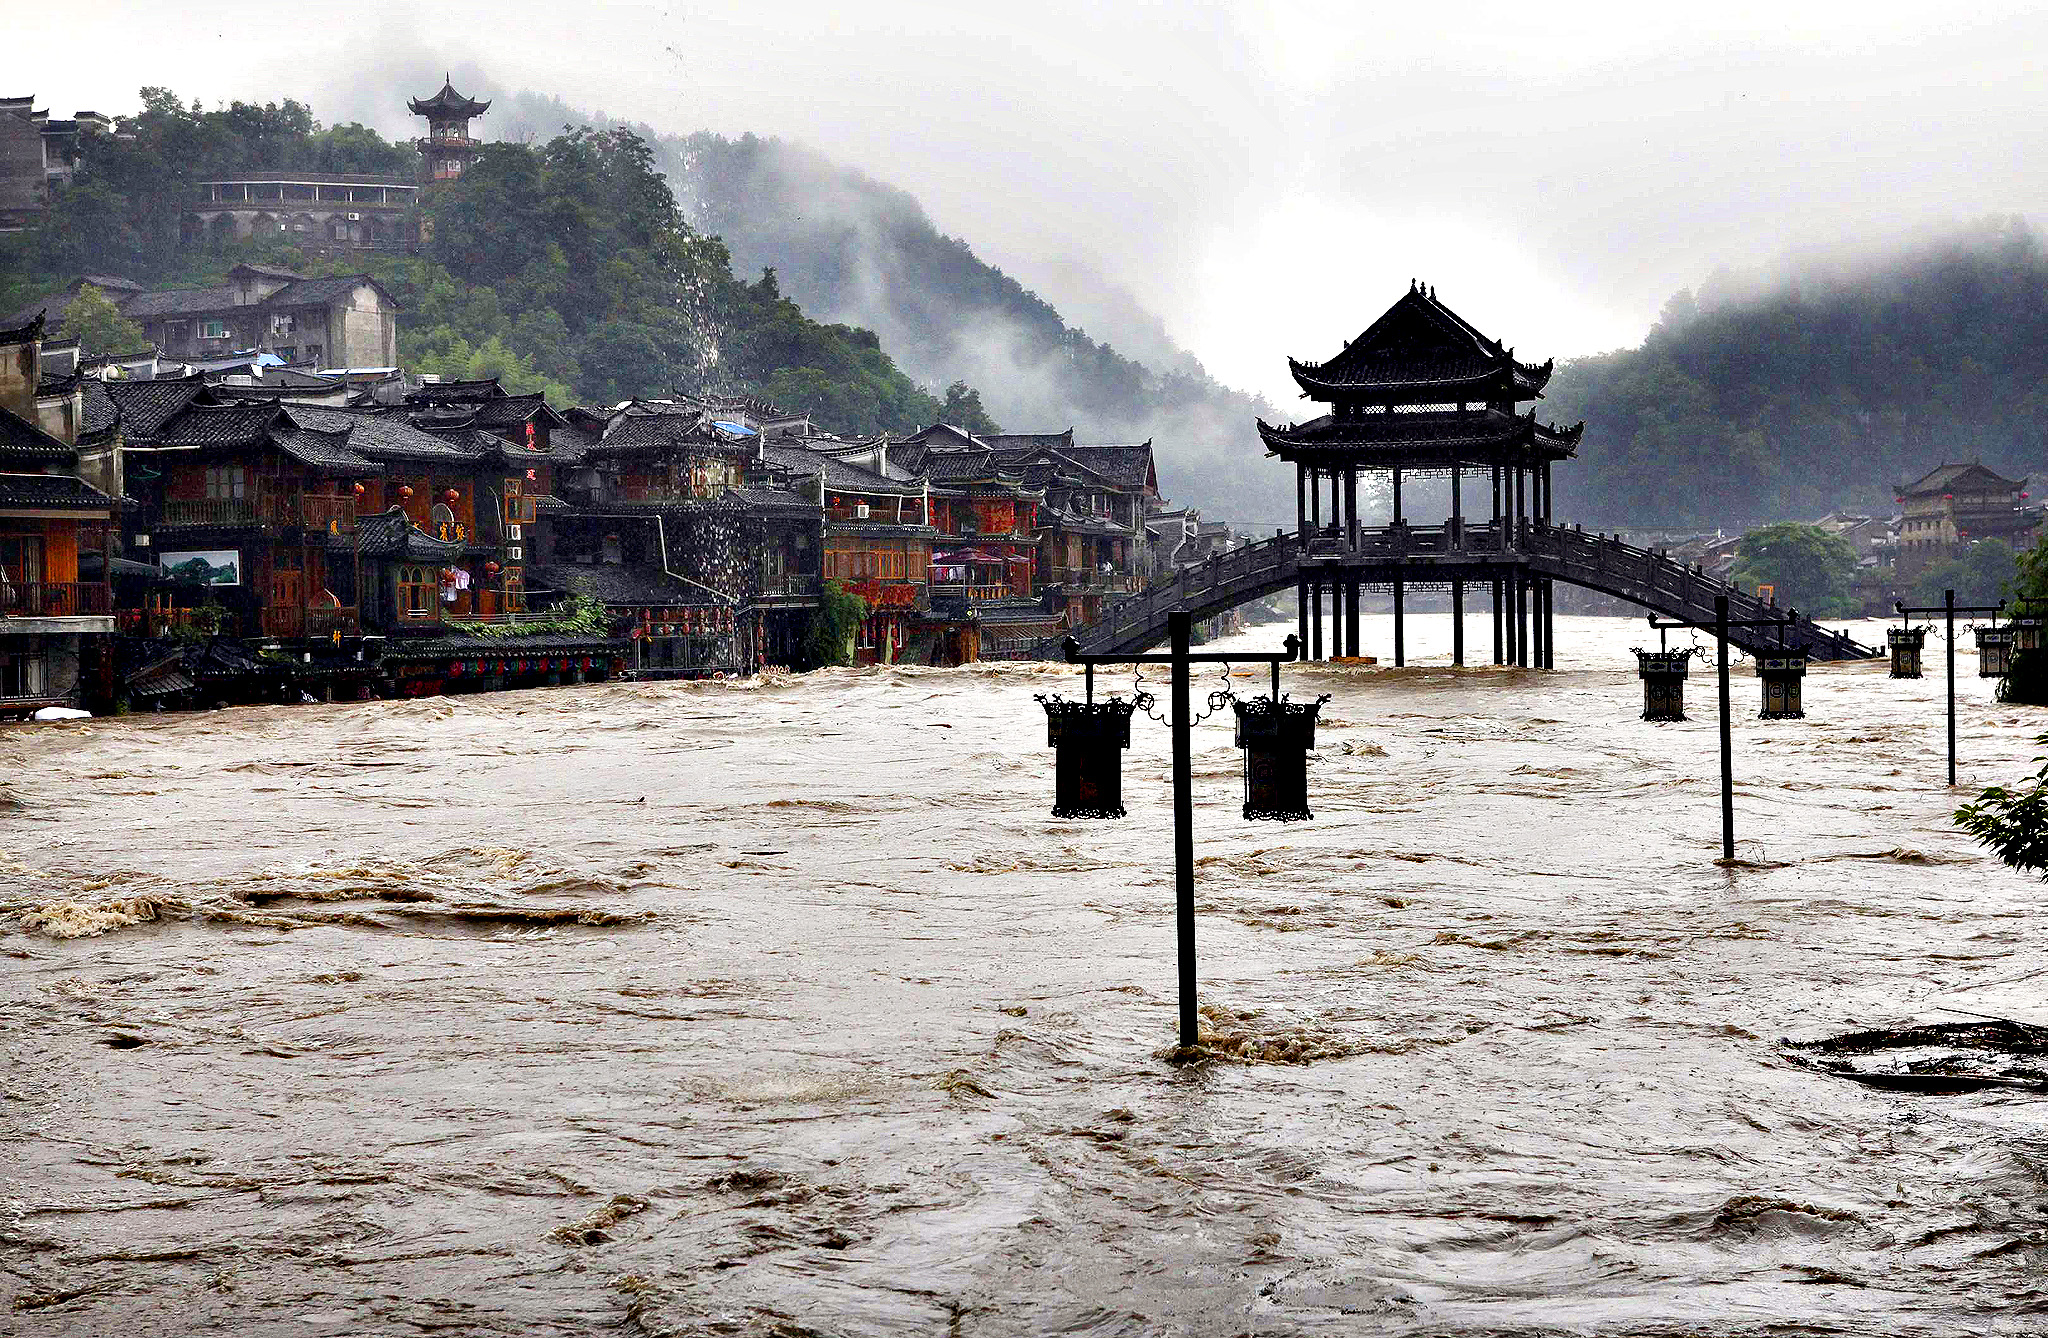 Street lamps are seen among floodwaters next to partially submerged buildings by an over flowing river at the ancient town as heavy rainfall hits Fenghuang county...Street lamps are seen among floodwaters next to partially submerged buildings by an over flowing river at the ancient town as heavy rainfall hits Fenghuang county, Hunan province July 15, 2014.  More than 50,000 locals and tourists were evacuated since Monday night as record downpours hit Fenghuang county of central China's Hunan province, Xinhua News Agency reported.